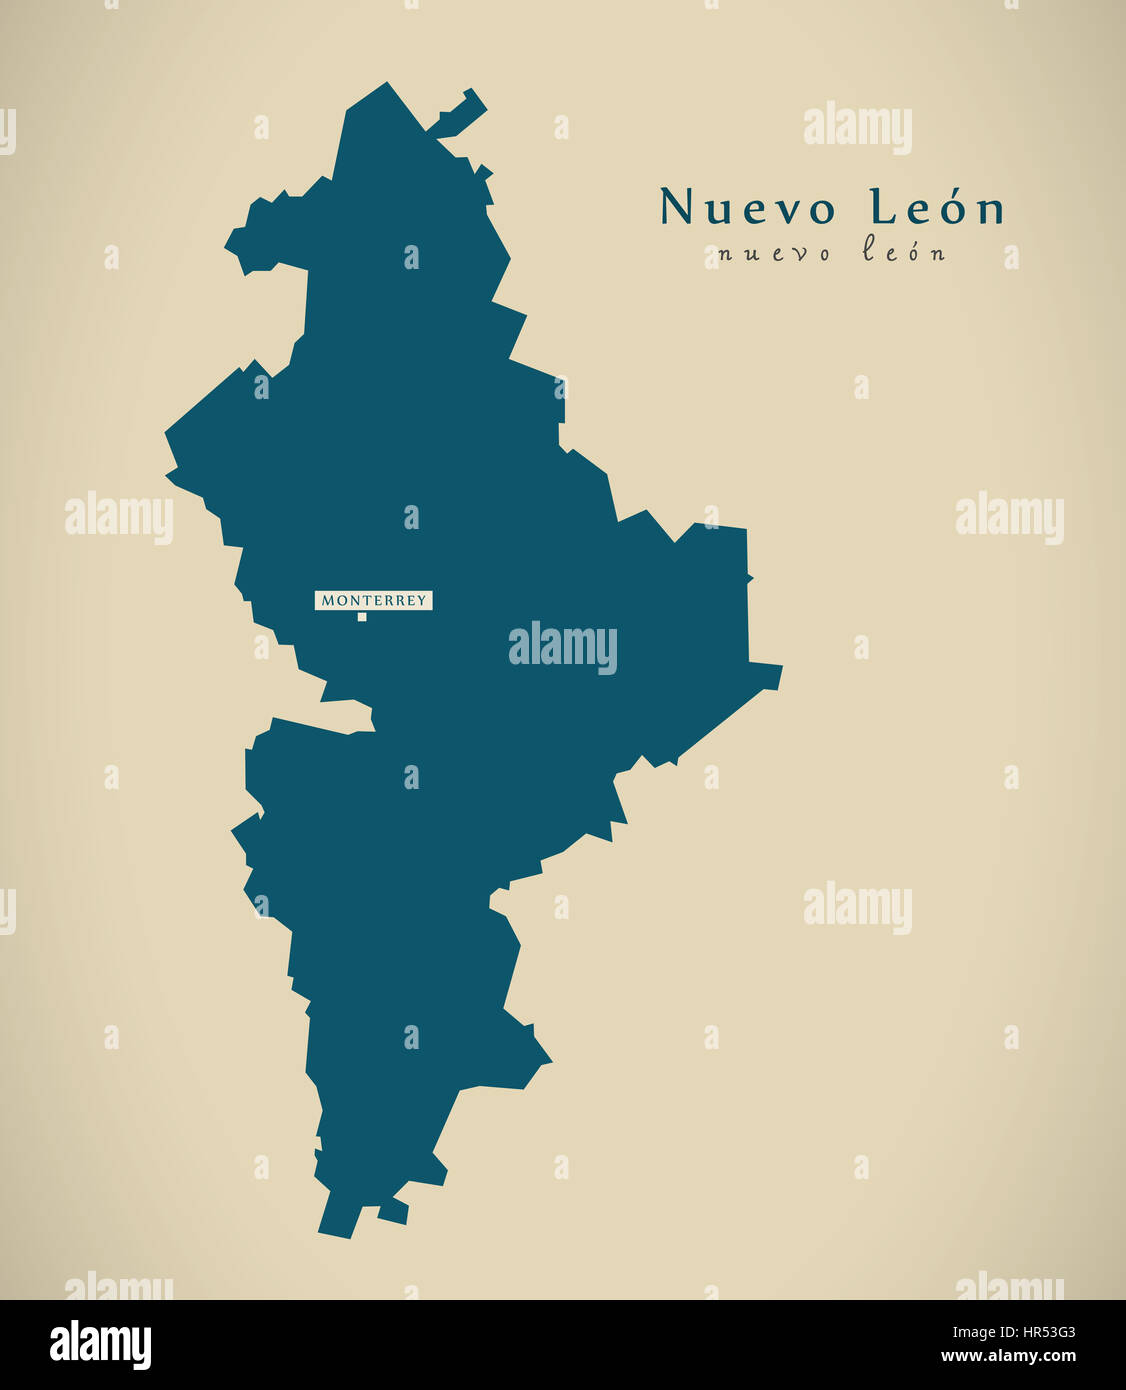 Nuevo leon map stock photos nuevo leon map stock images alamy modern map nuevo leon mexico mx illustration stock image publicscrutiny Image collections